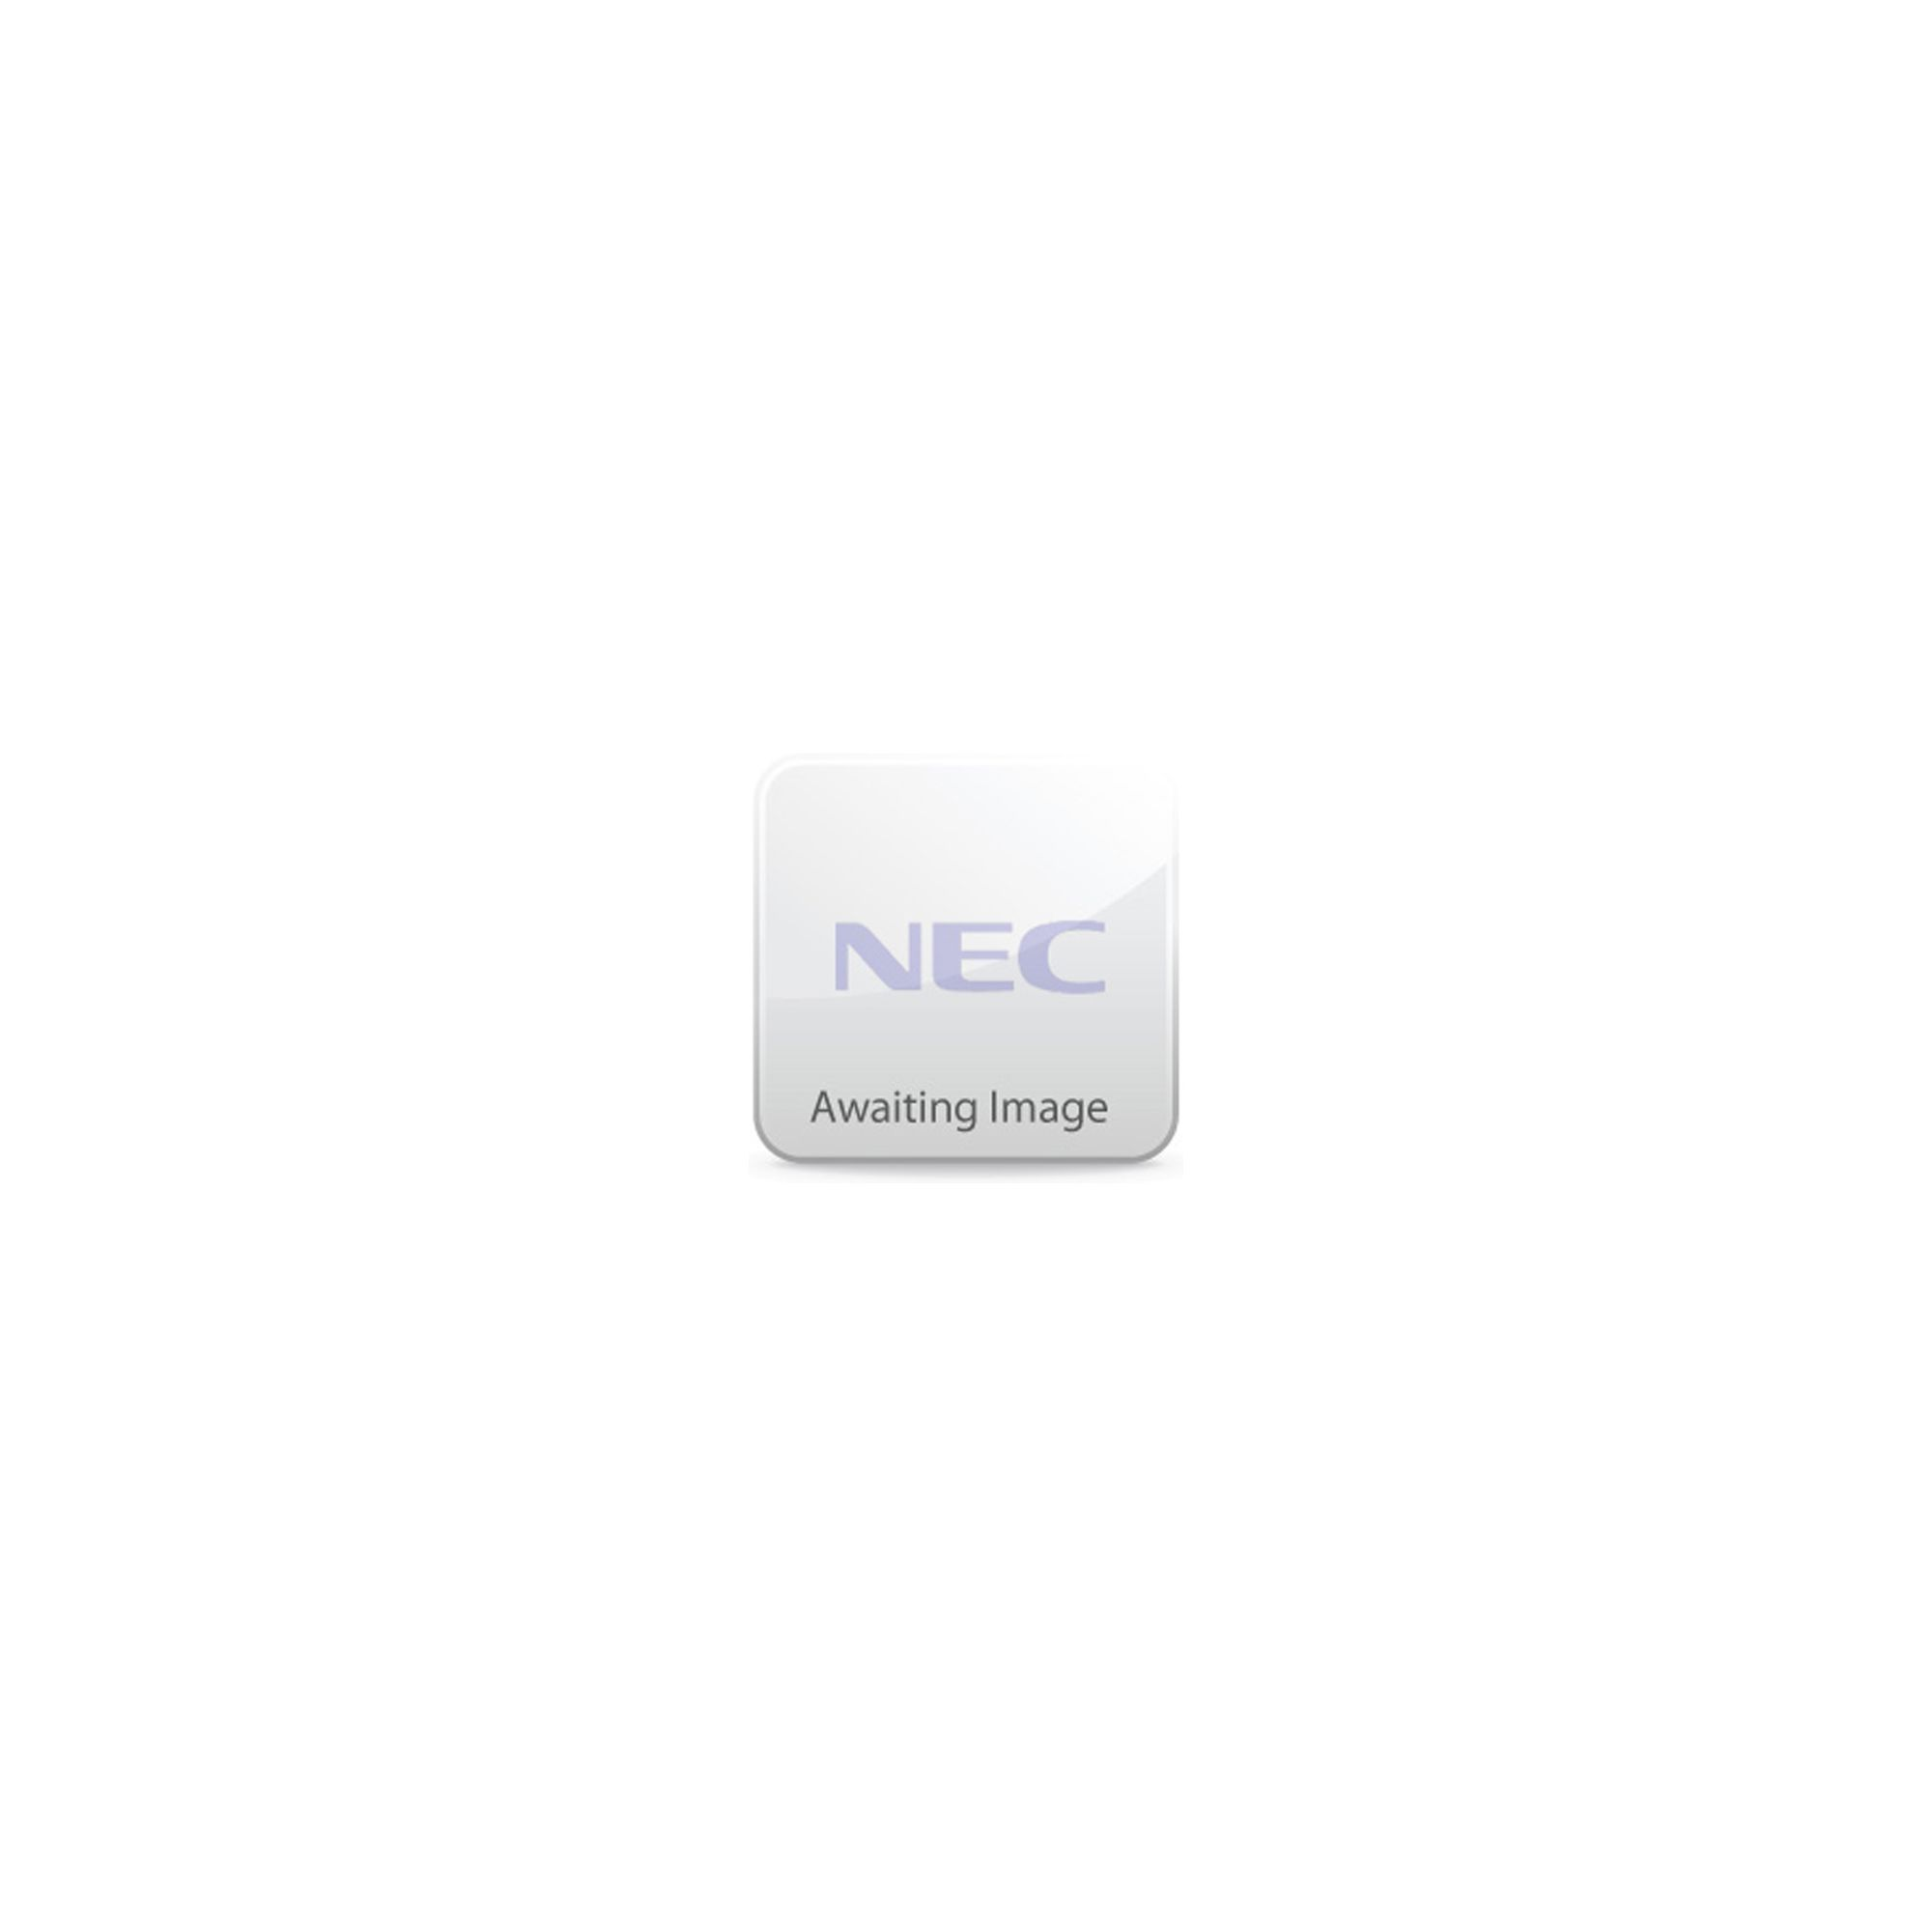 NEC Replacement Lamp for NP1150/NP2150/NP3150 and NP3151W Projectors at Tesco Direct